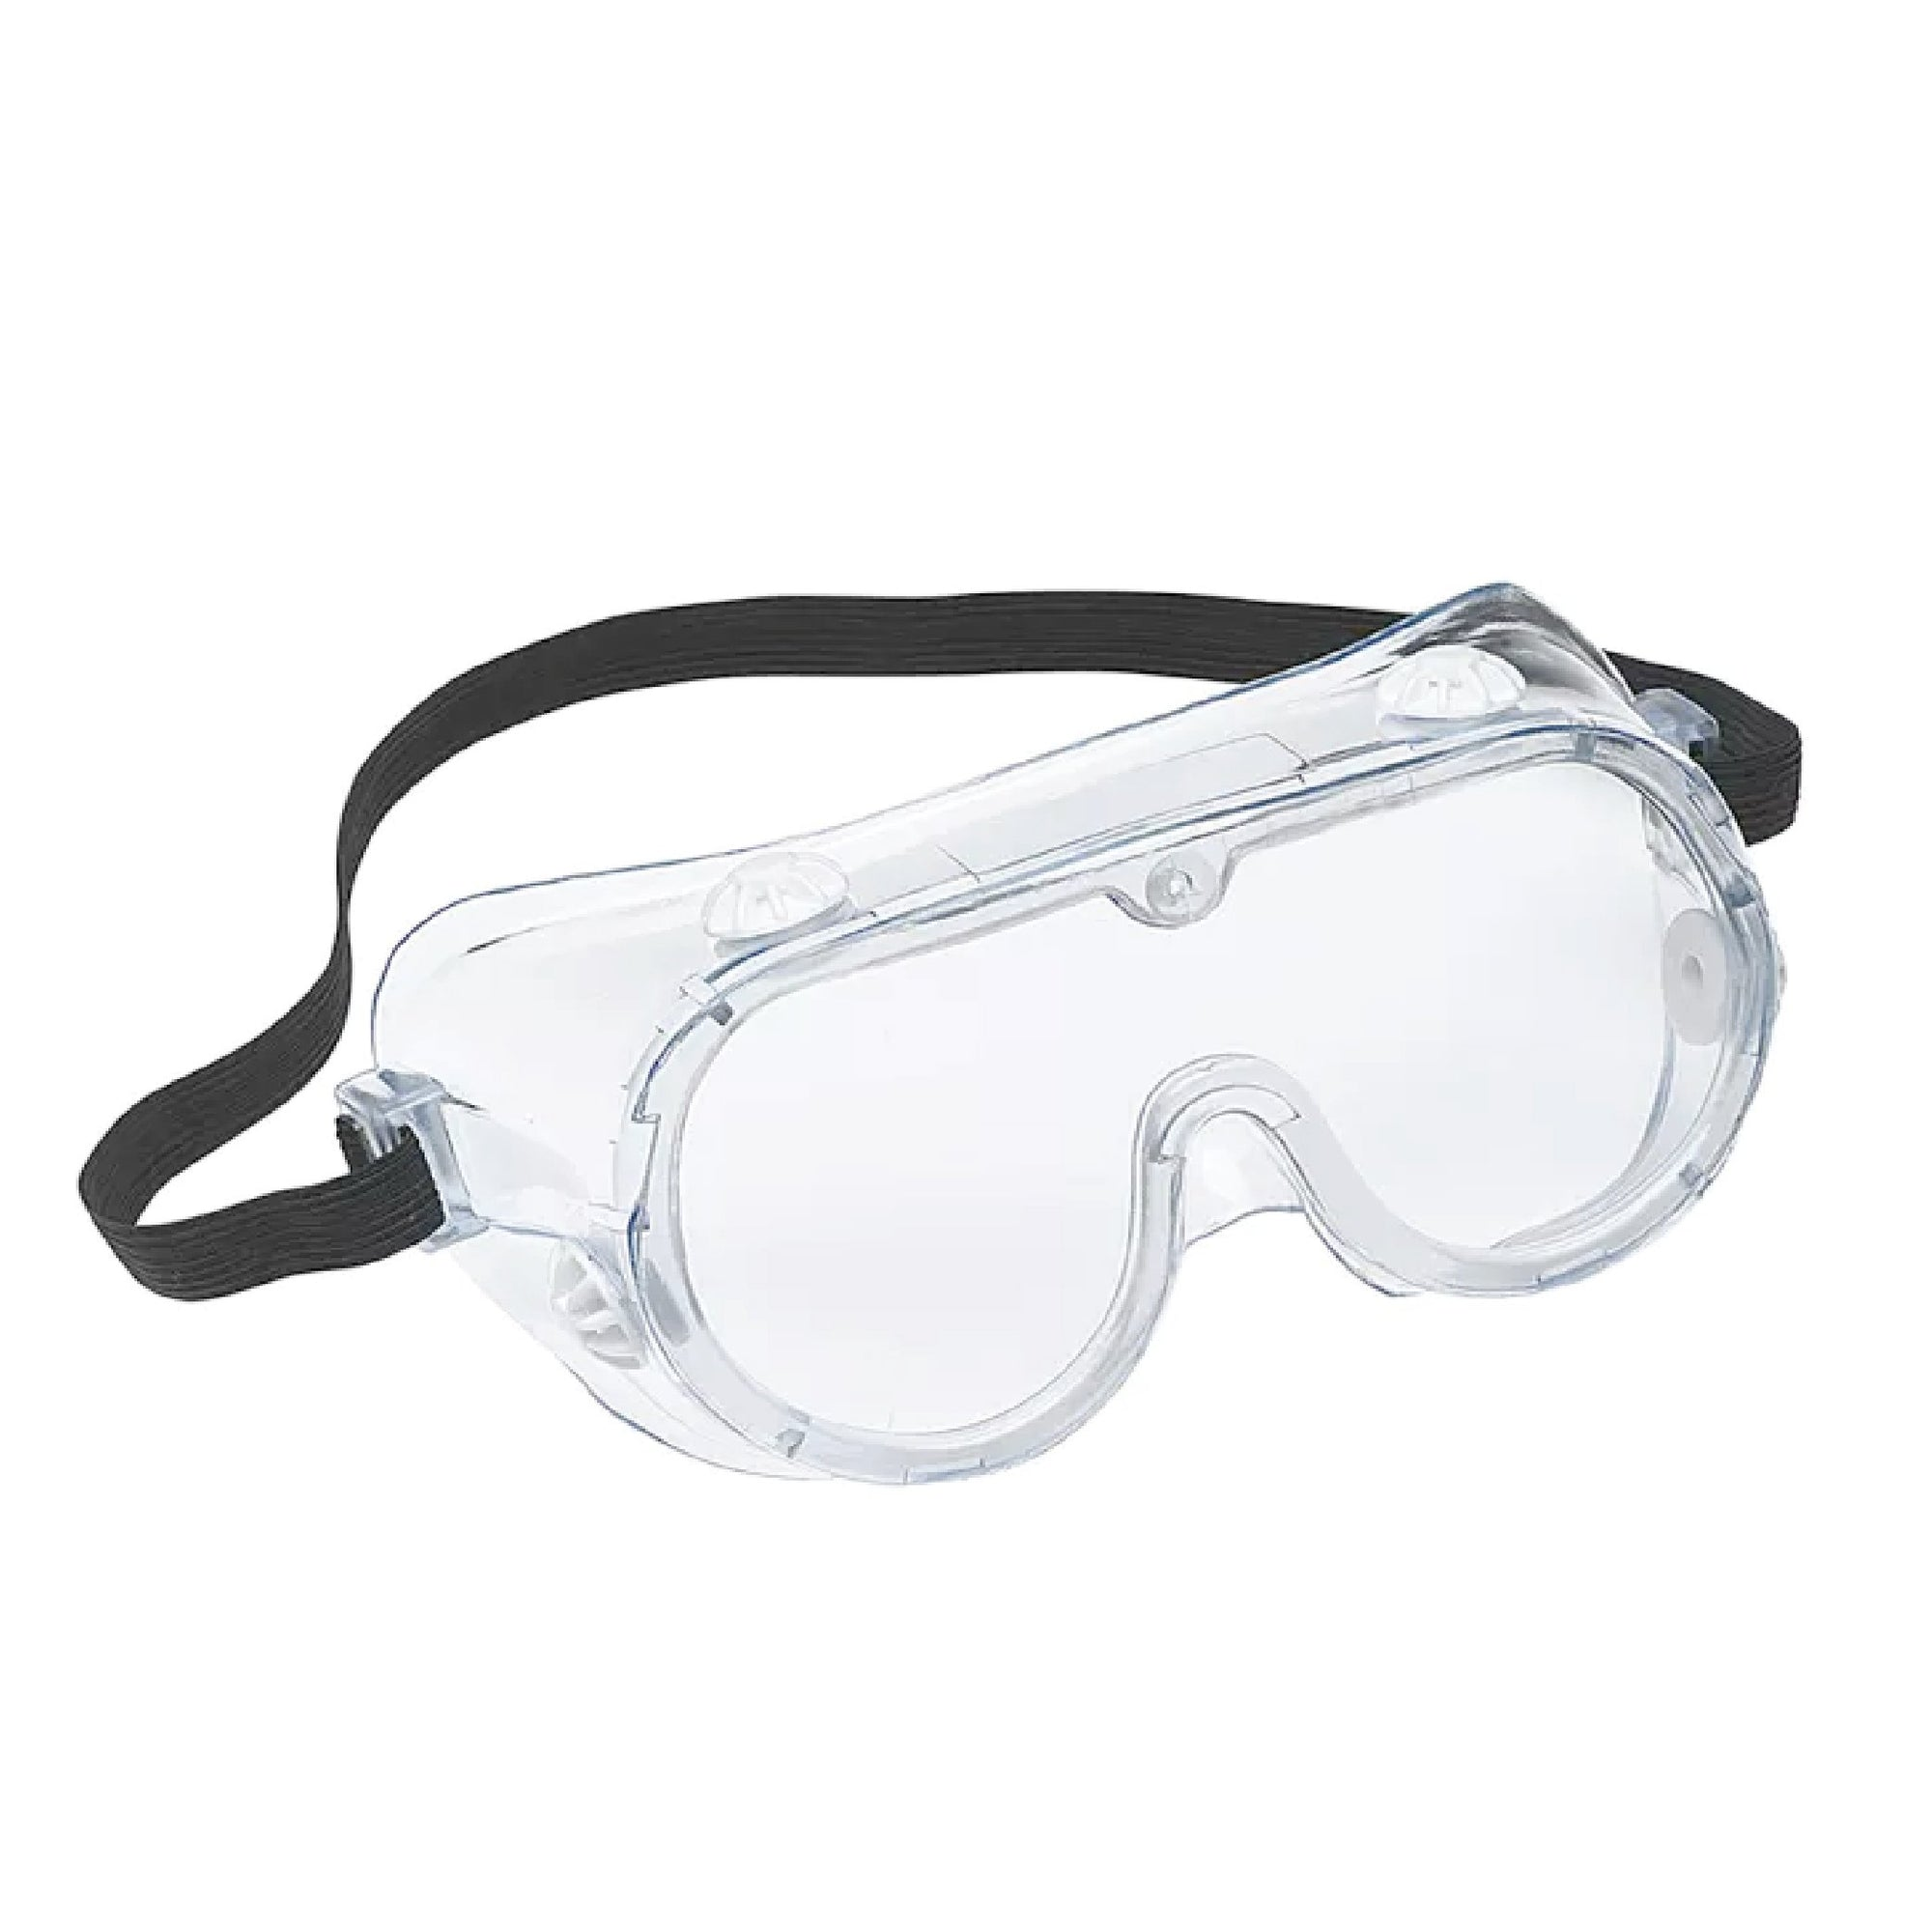 Goggles, Safety Glasses, Protective Eyewear